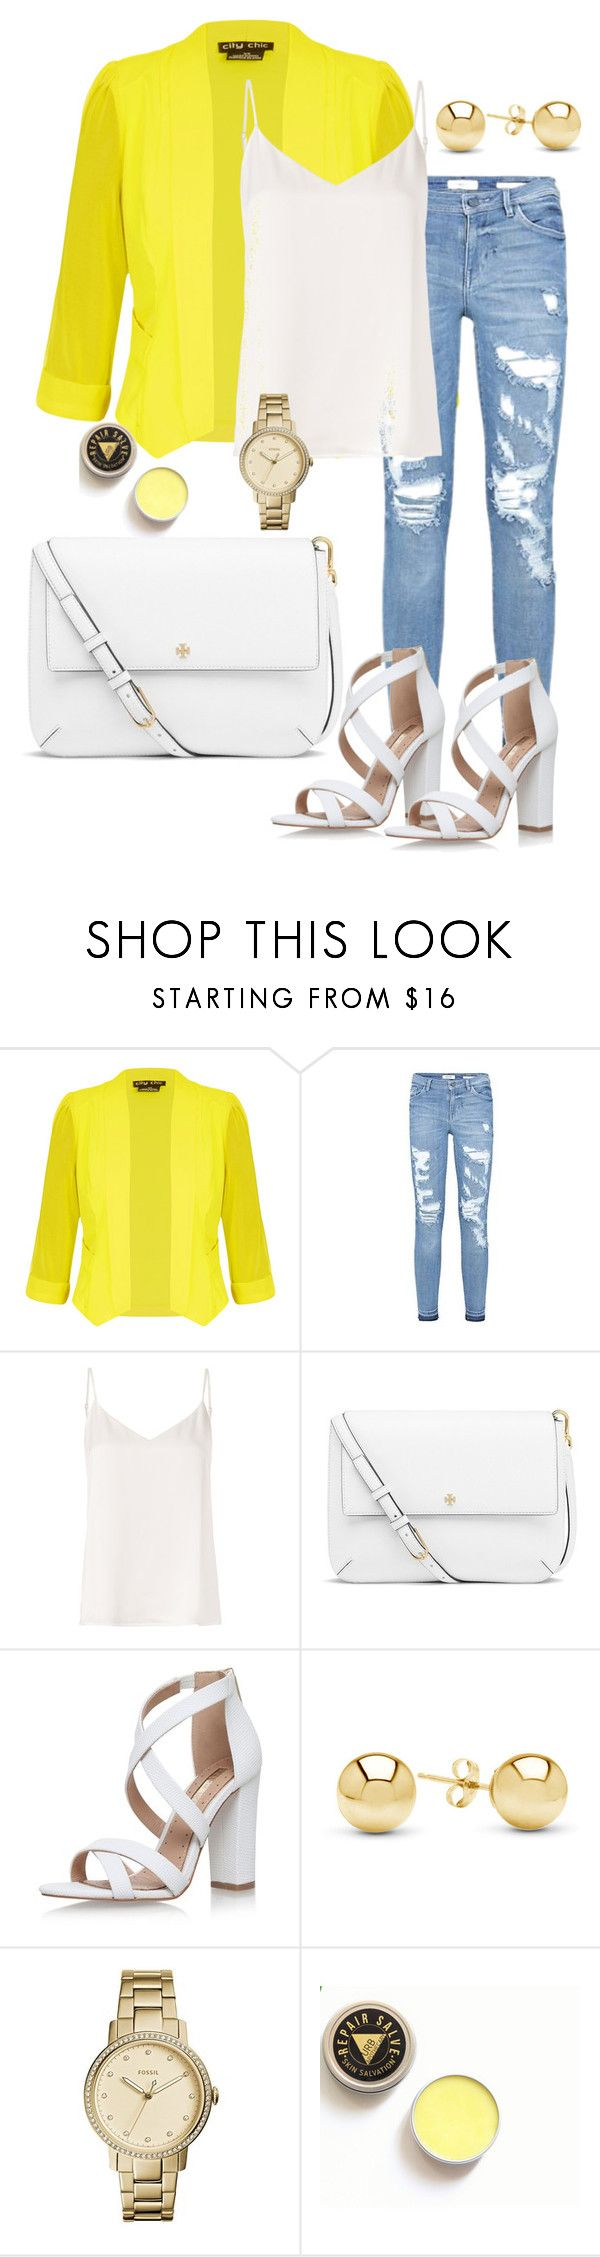 """""""style"""" by studio-al-t on Polyvore featuring мода, City Chic, L'Agence, Tory Burch, Miss KG, Jewelonfire и plus size clothing"""